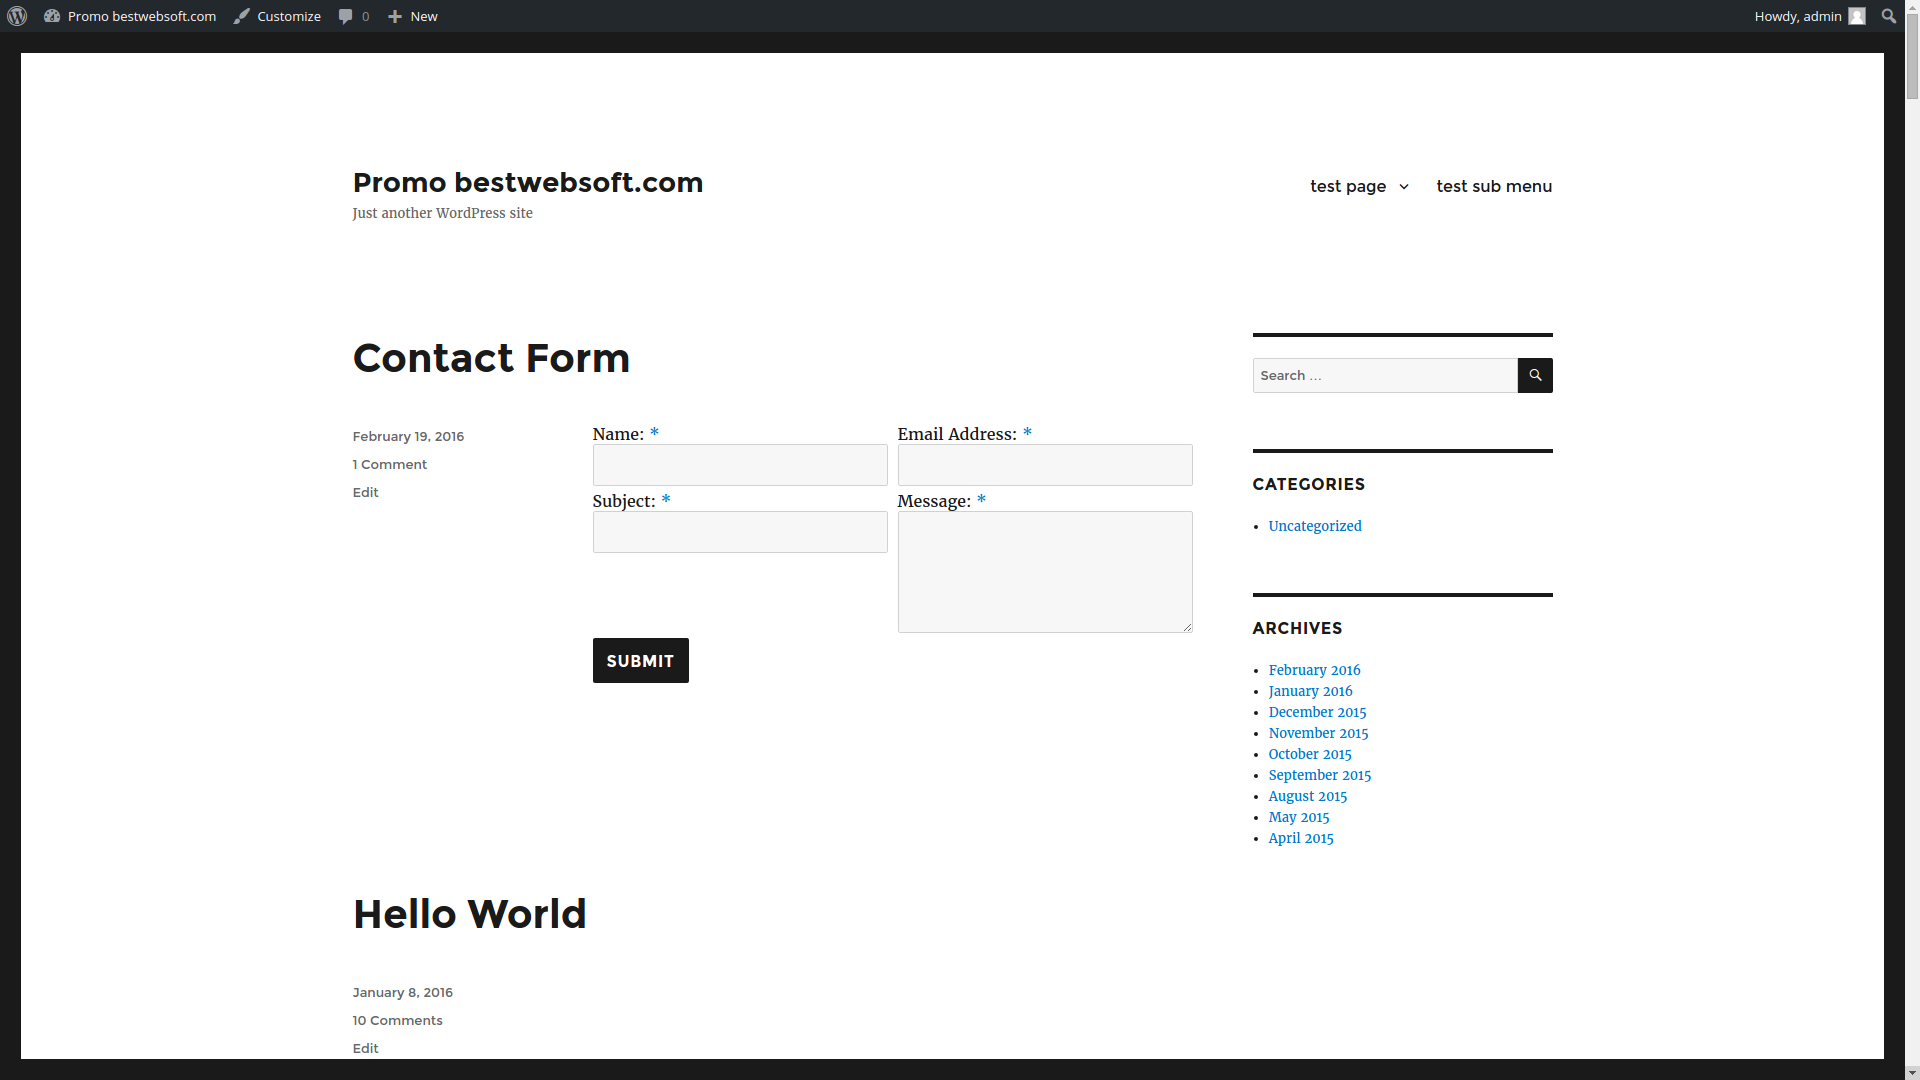 Contact Form displaying with 2 columns.